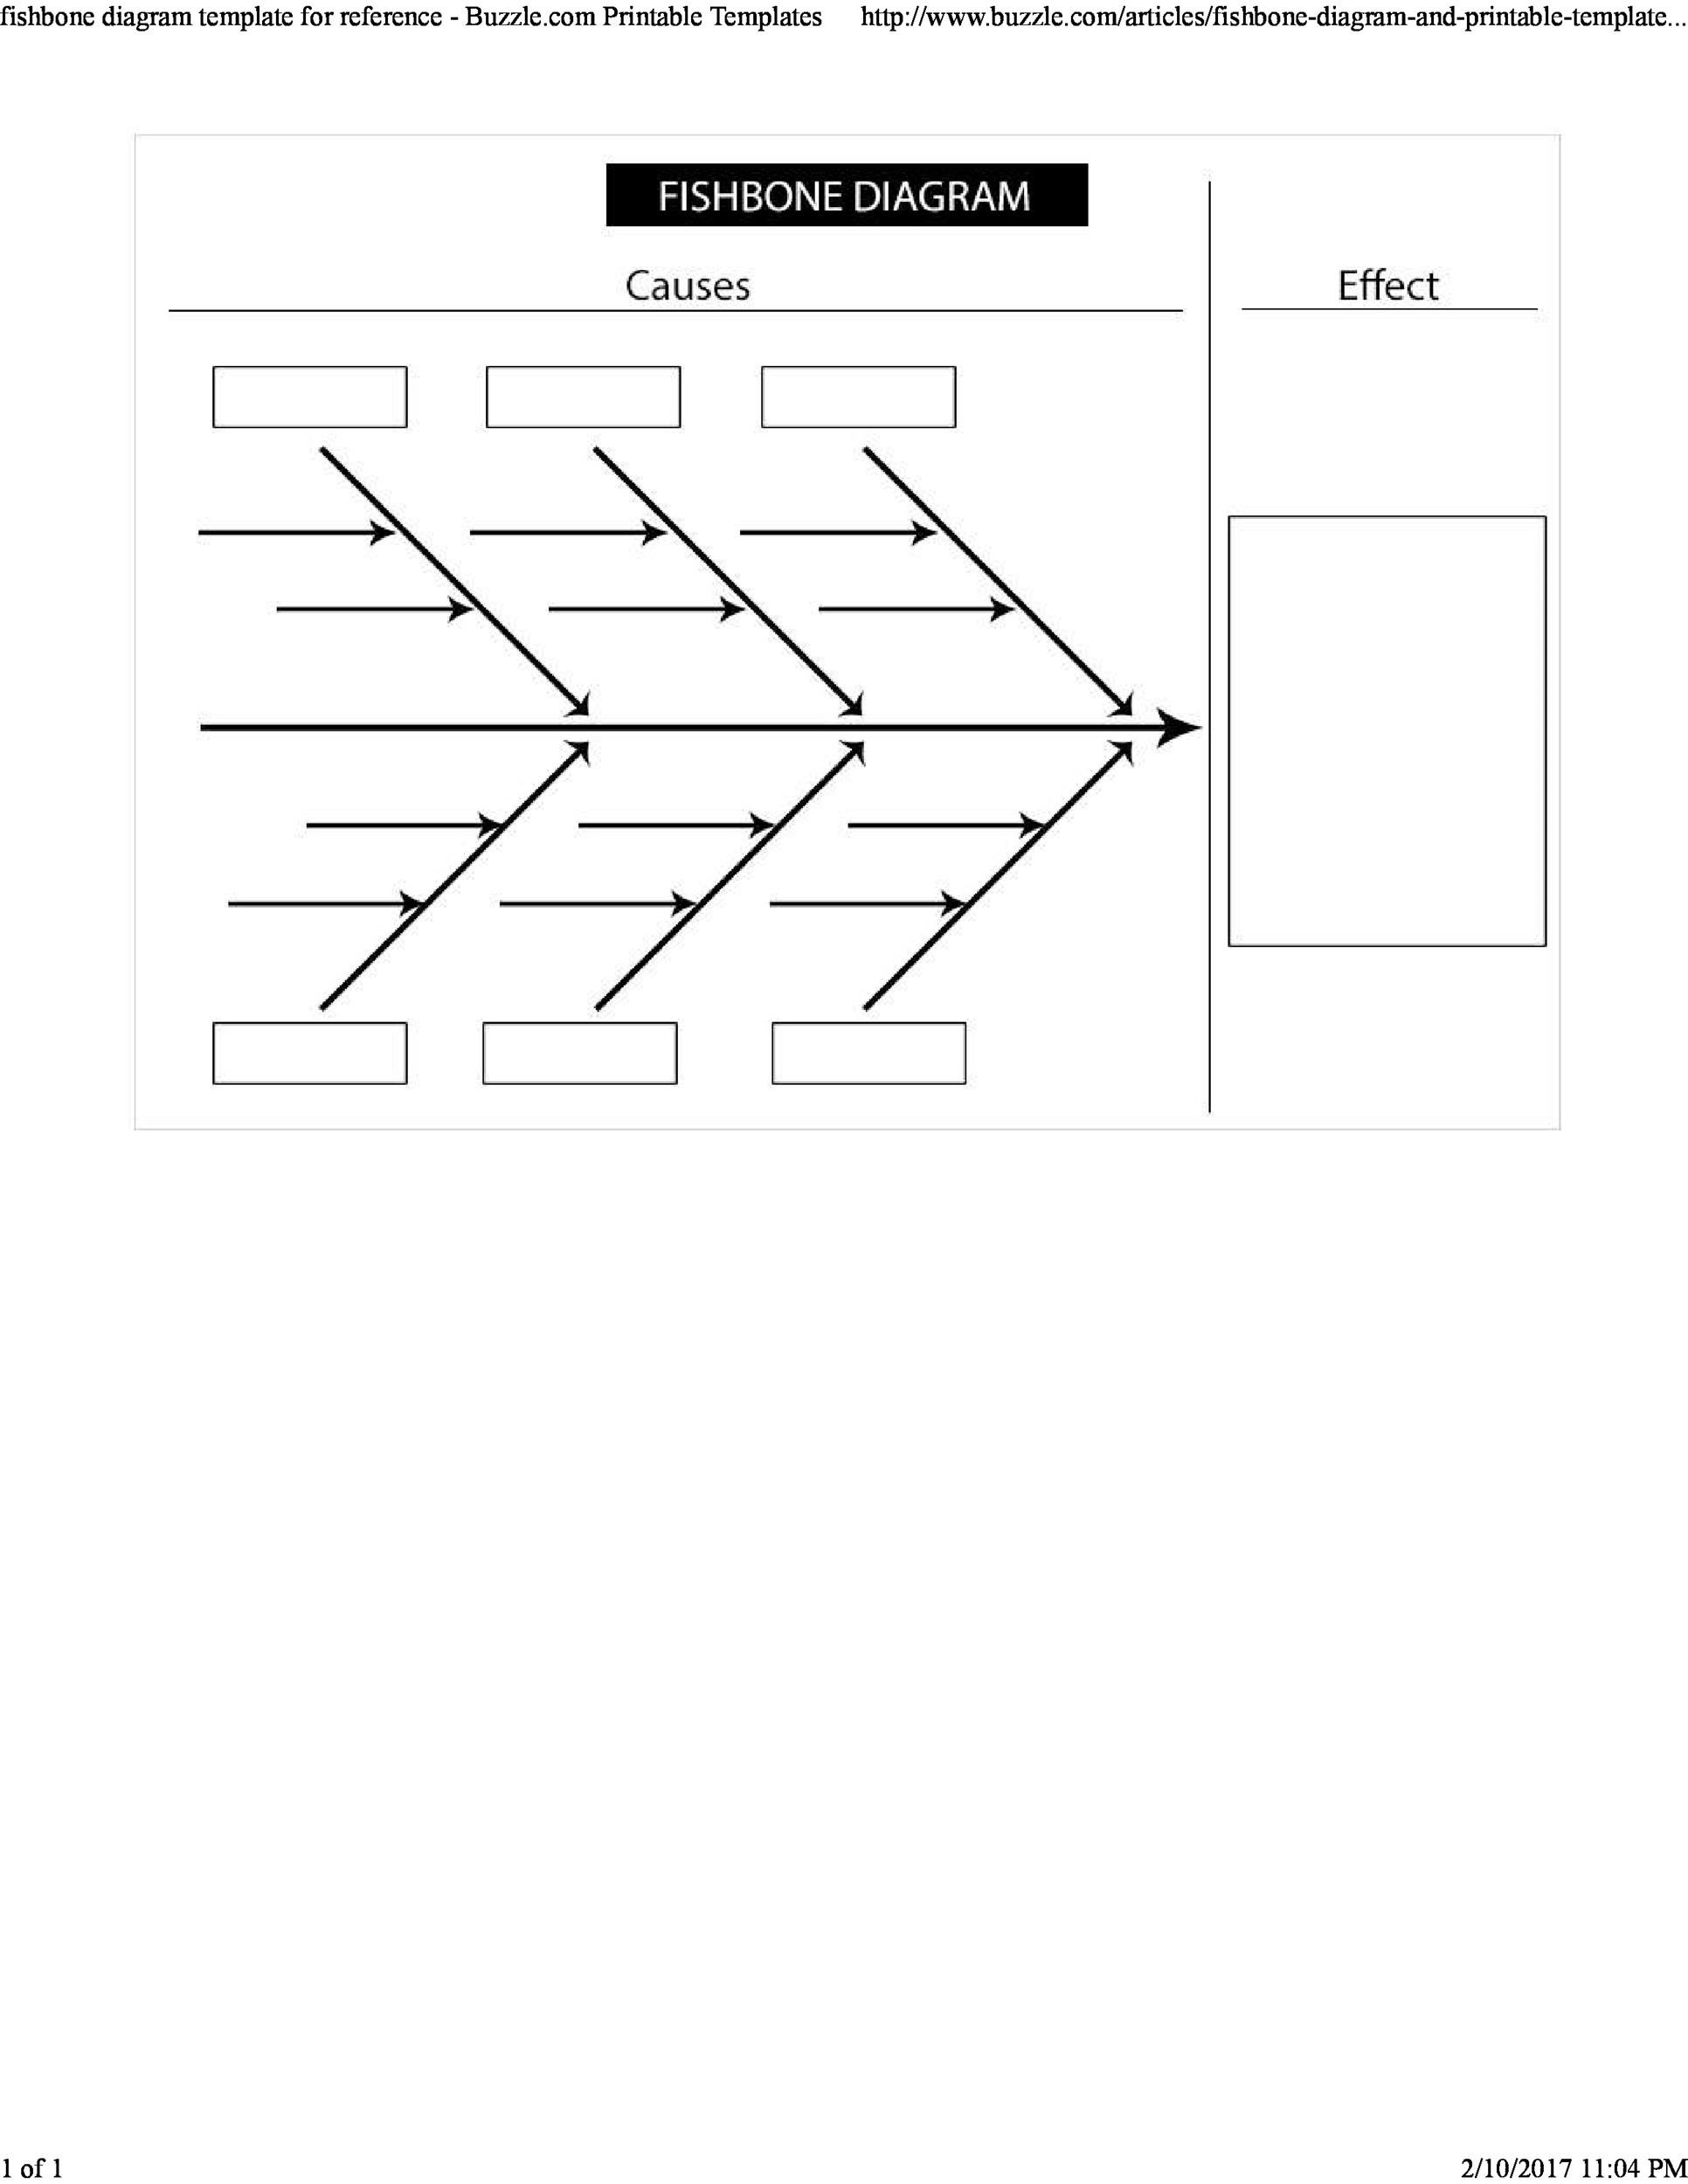 43 great fishbone diagram templates examples word excel. Black Bedroom Furniture Sets. Home Design Ideas